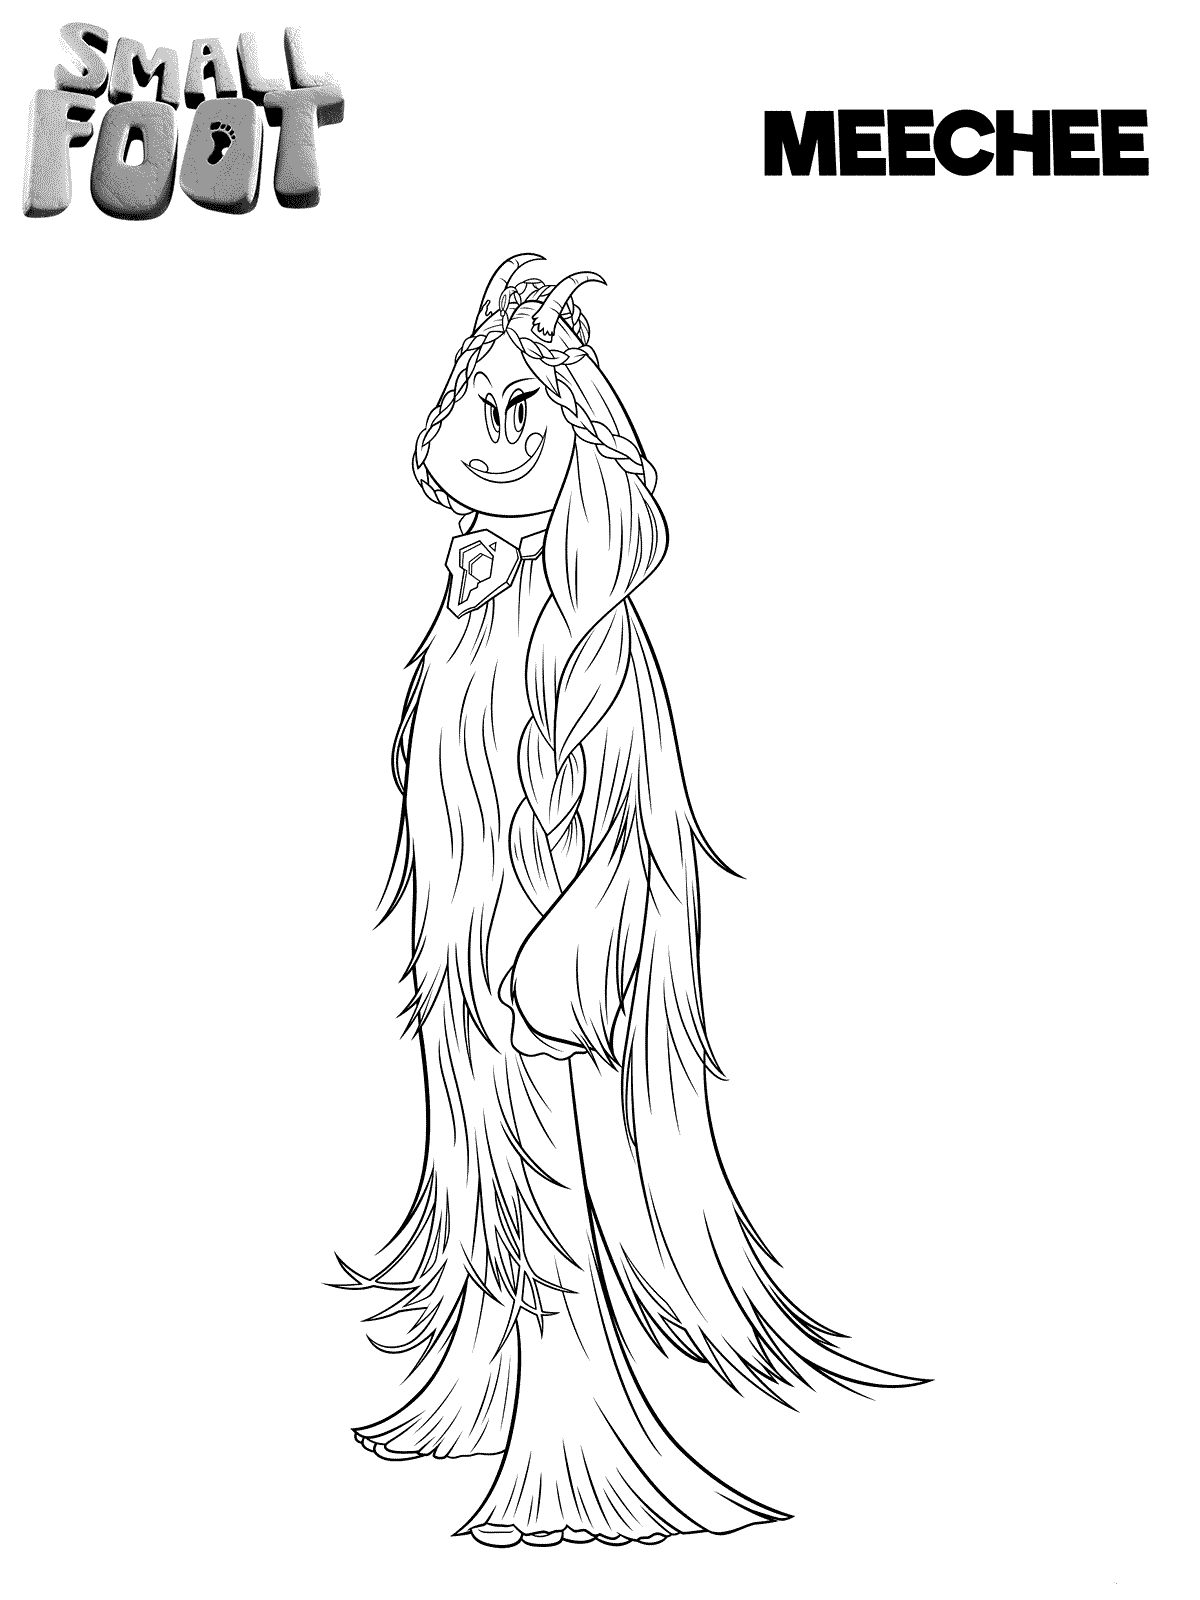 Smallfoot Coloring Pages To Print Meechee Coloring Pages To Print Cartoon Coloring Pages Coloring Pages